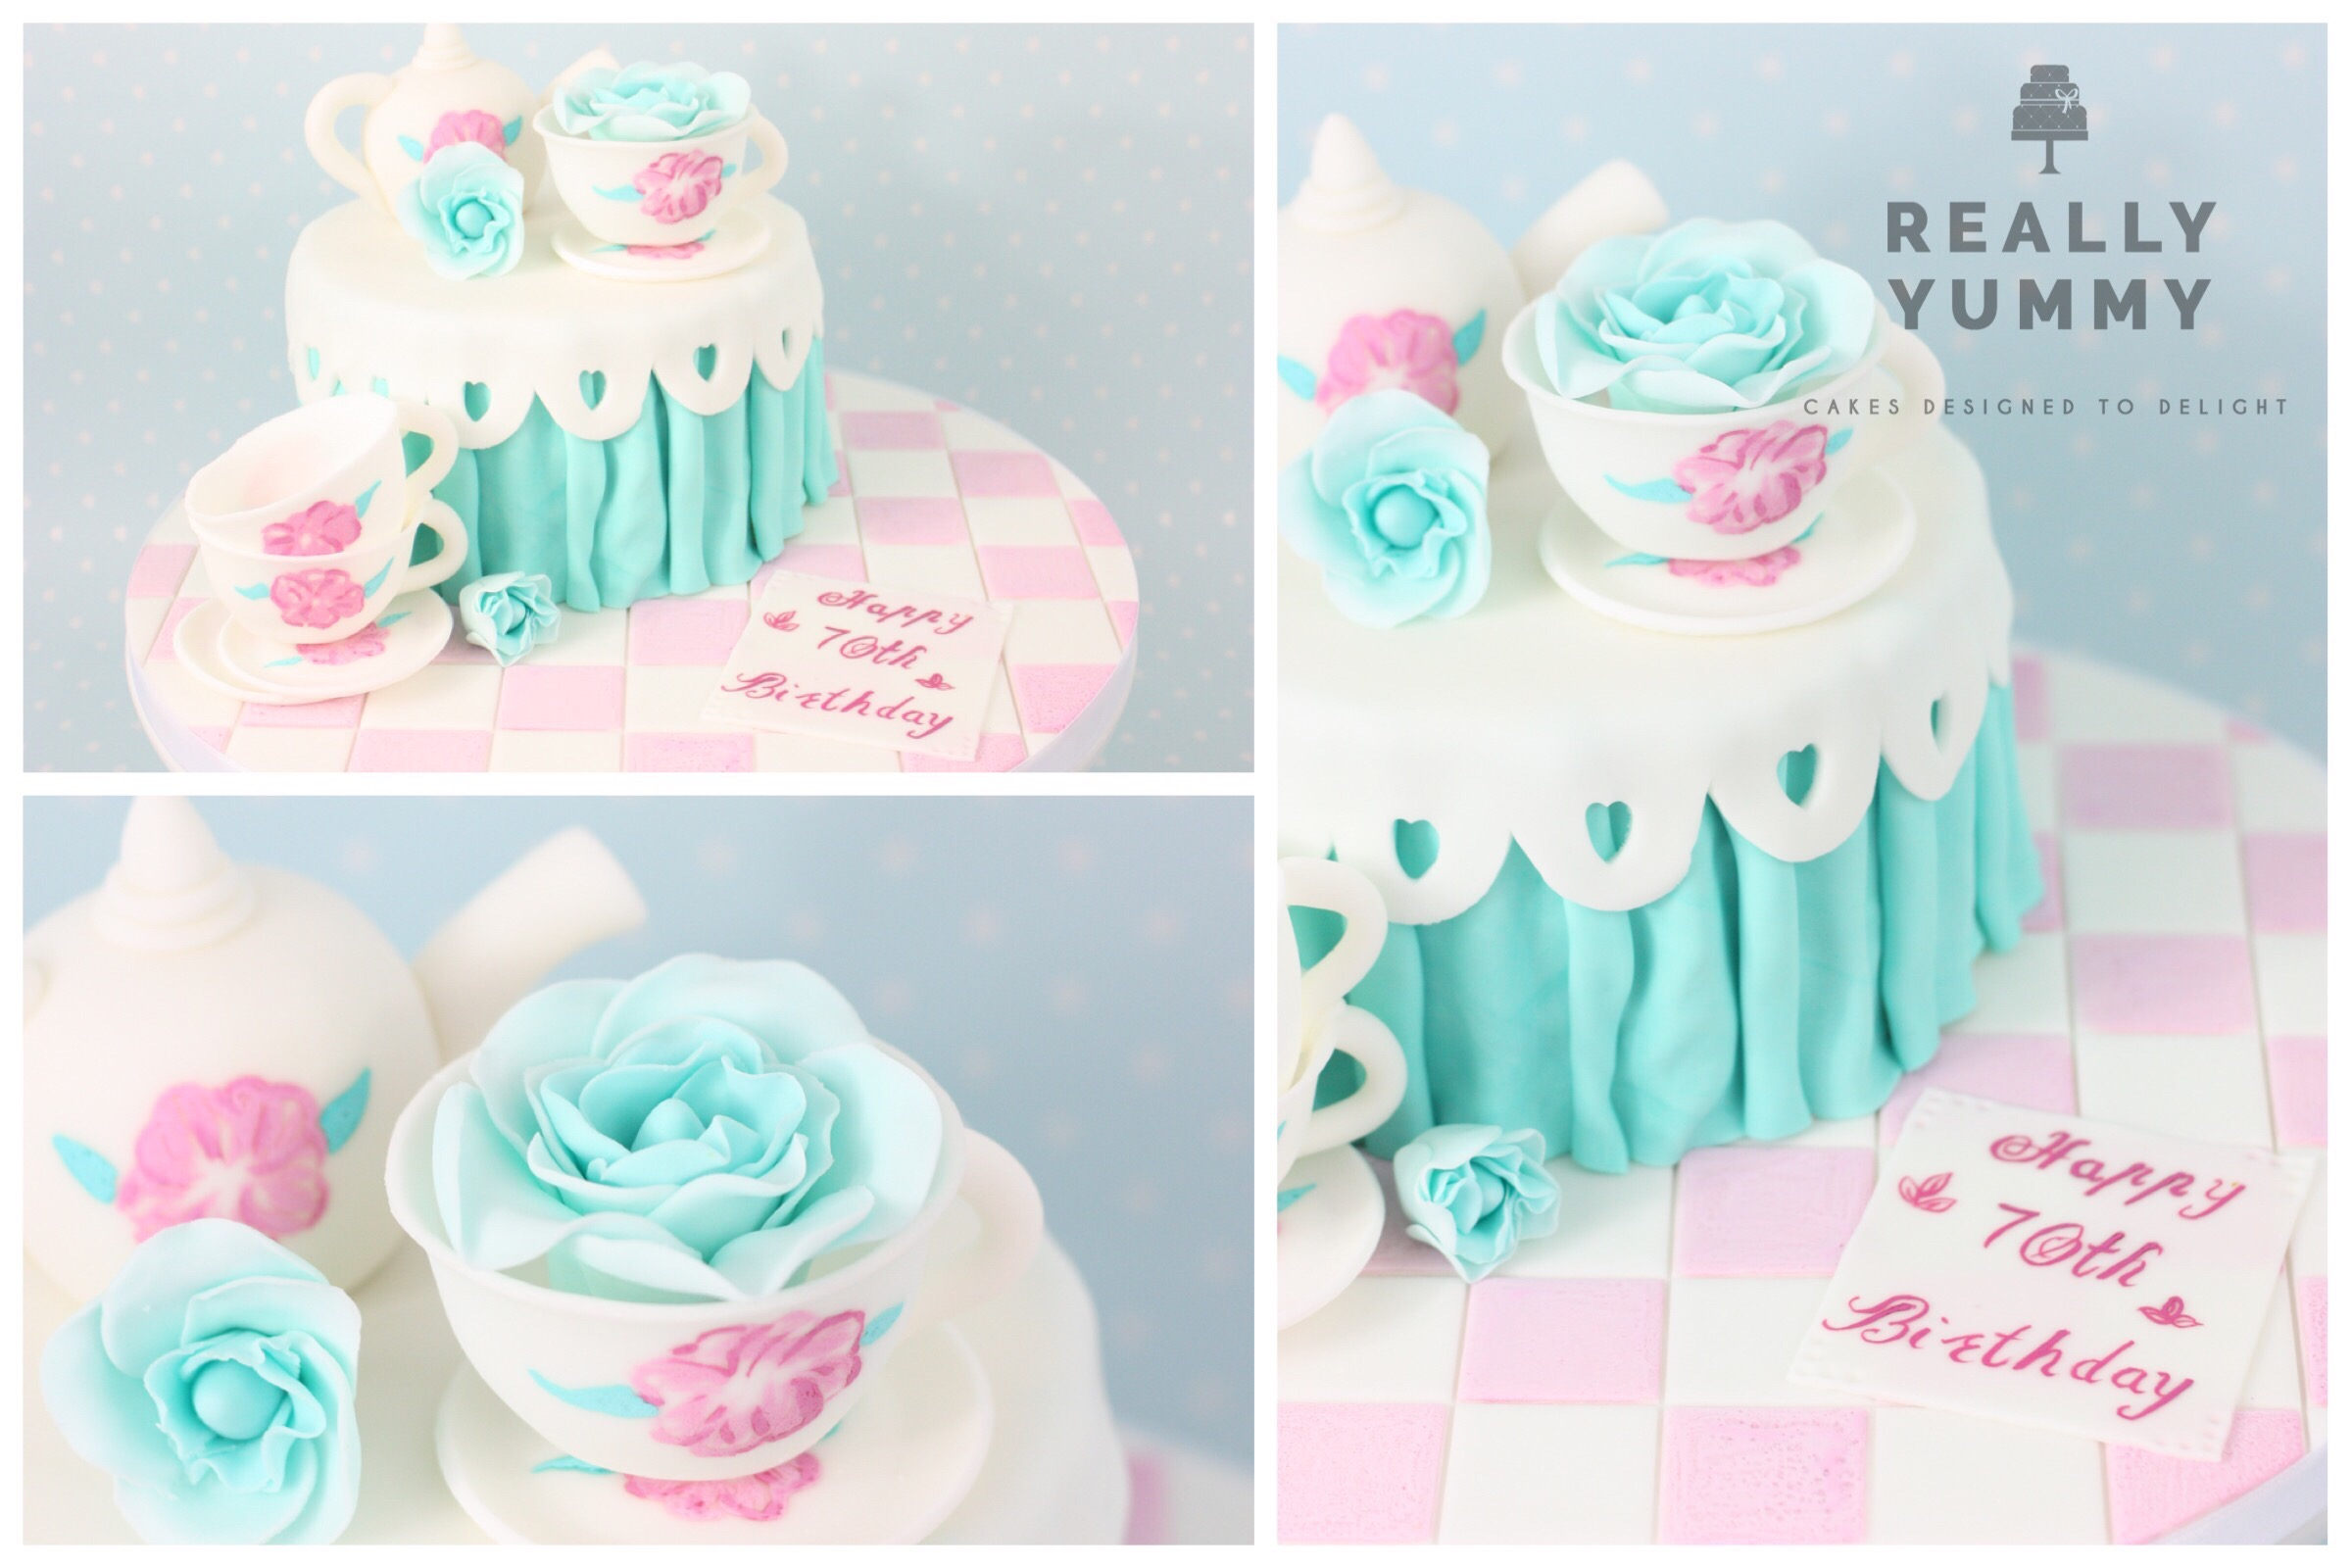 Tea set cake, in pink and teal